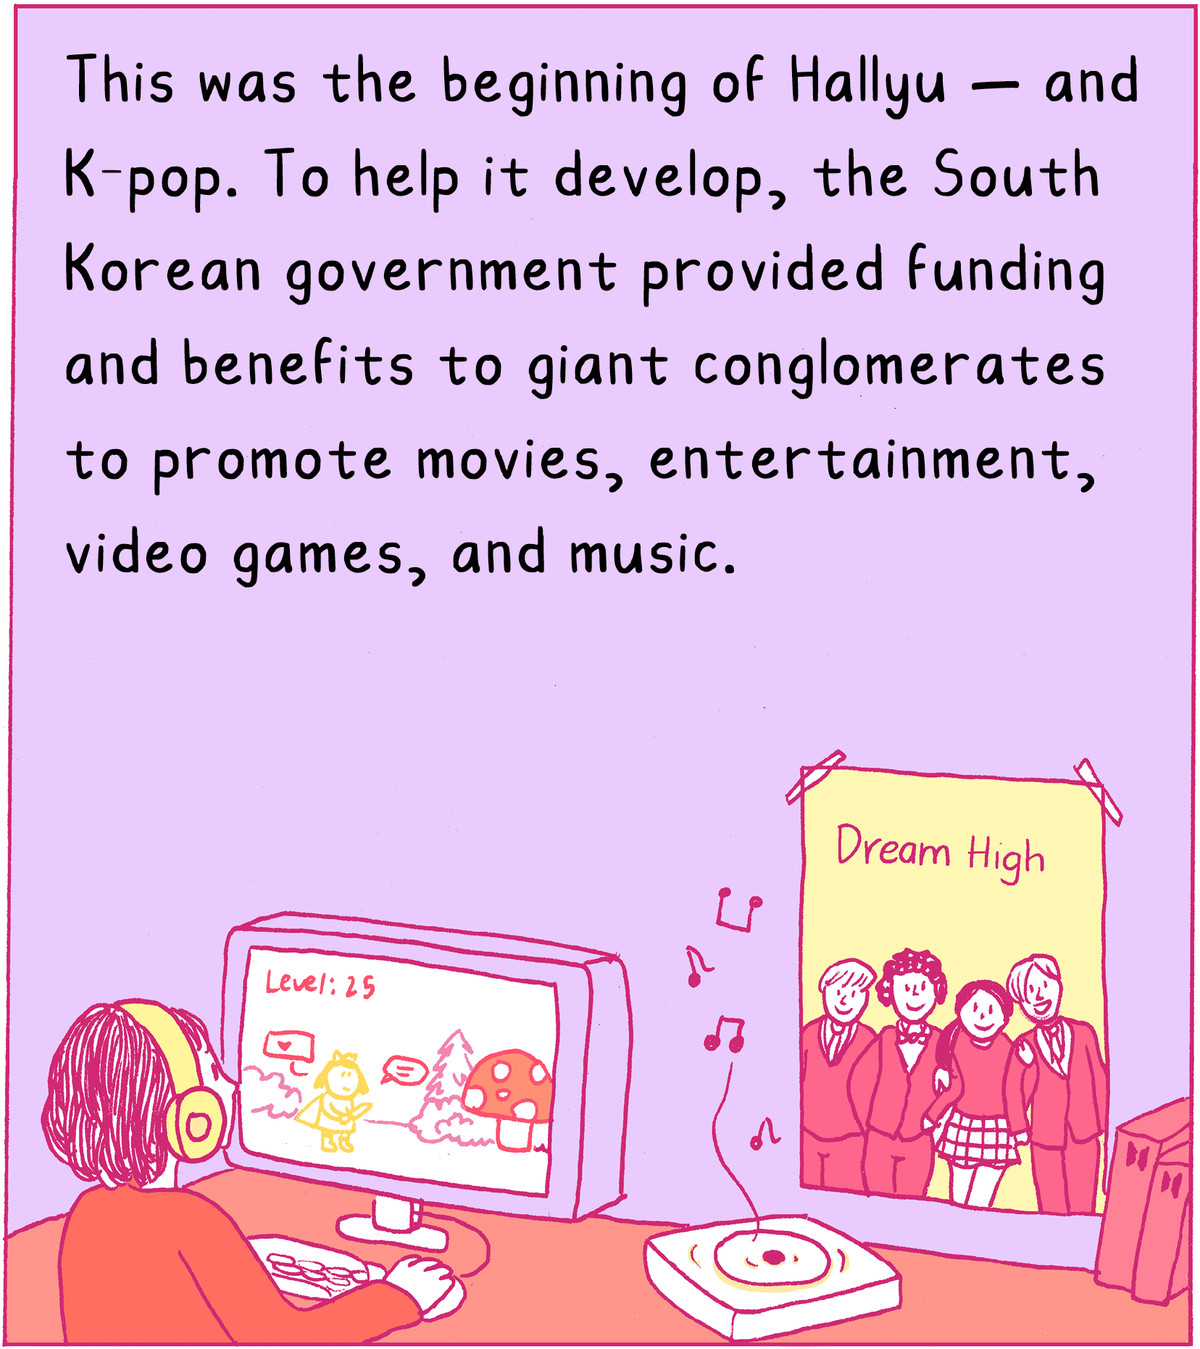 This was the beginning of Hallyu — and K-pop.To help it develop, the South Korean government provided funding and benefits to giant conglomerates to promote movies, entertainment, video games, and music.